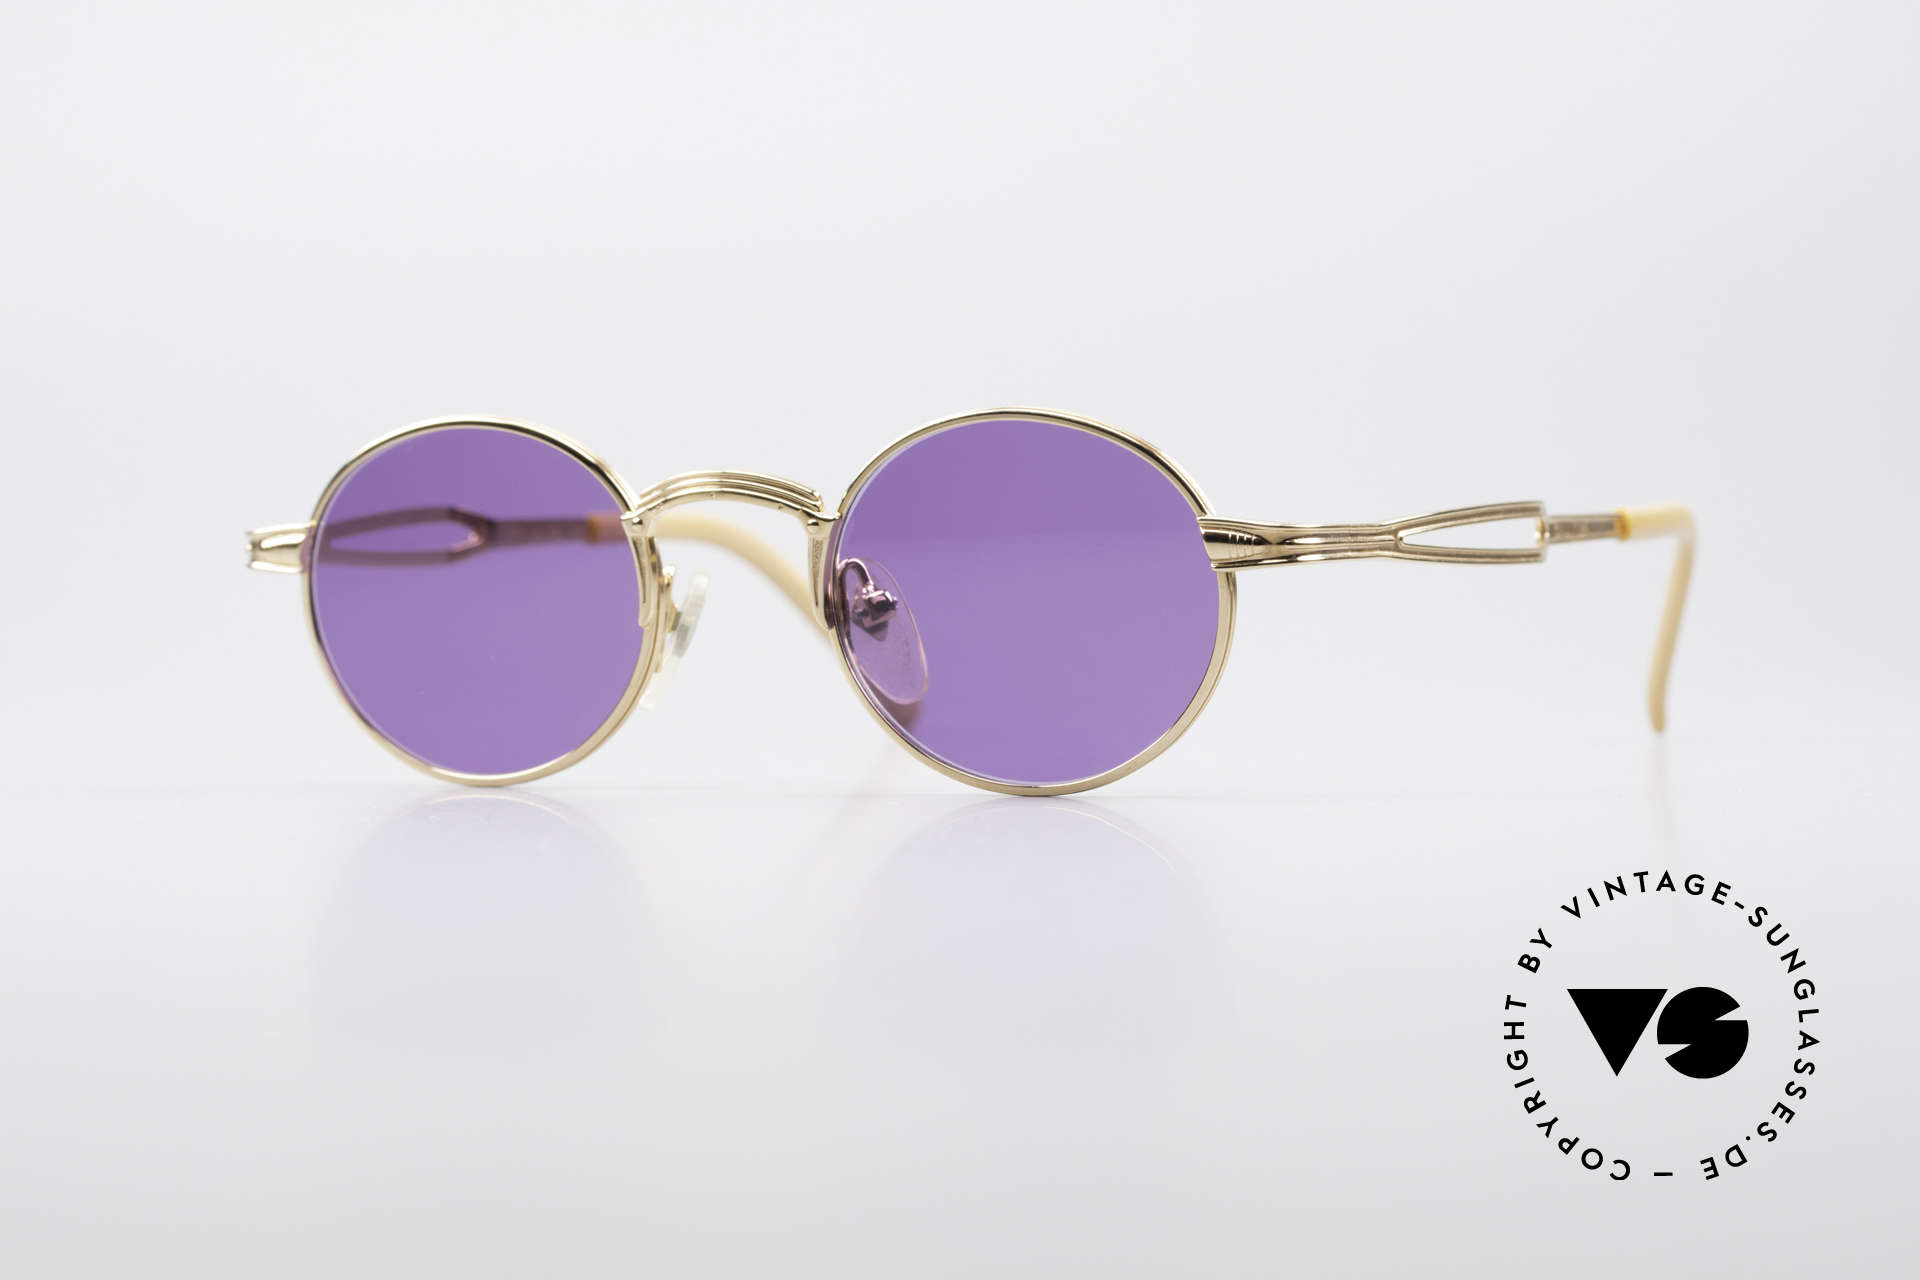 Jean Paul Gaultier 55-7107 Extra Small Round Gold Plated, small round vintage shades by Jean Paul GAULTIER, Made for Men and Women